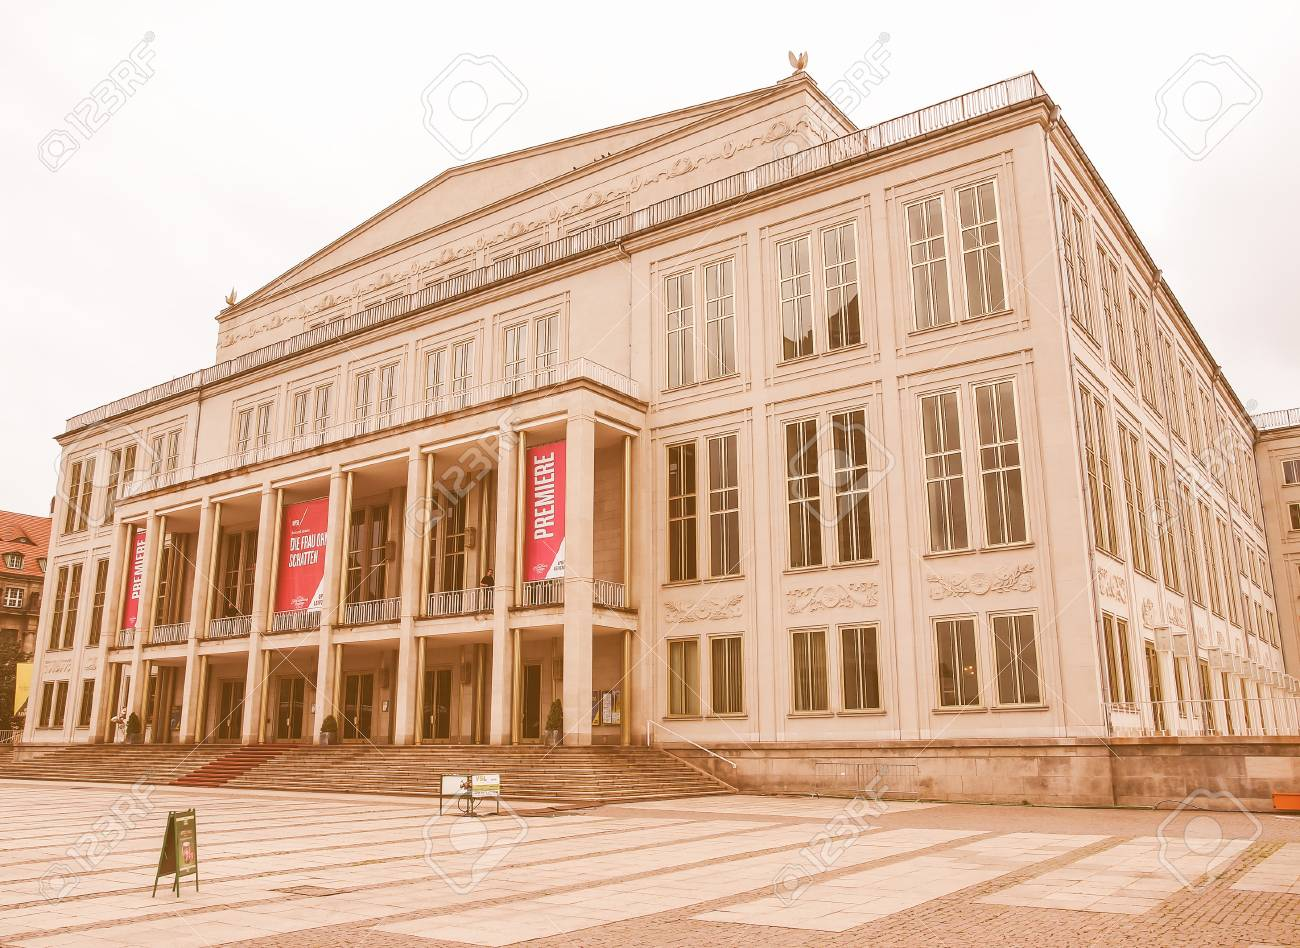 Leipzig Germany June 14 2014 The New Opera House Built In Stock Photo Picture And Royalty Free Image Image 53491596